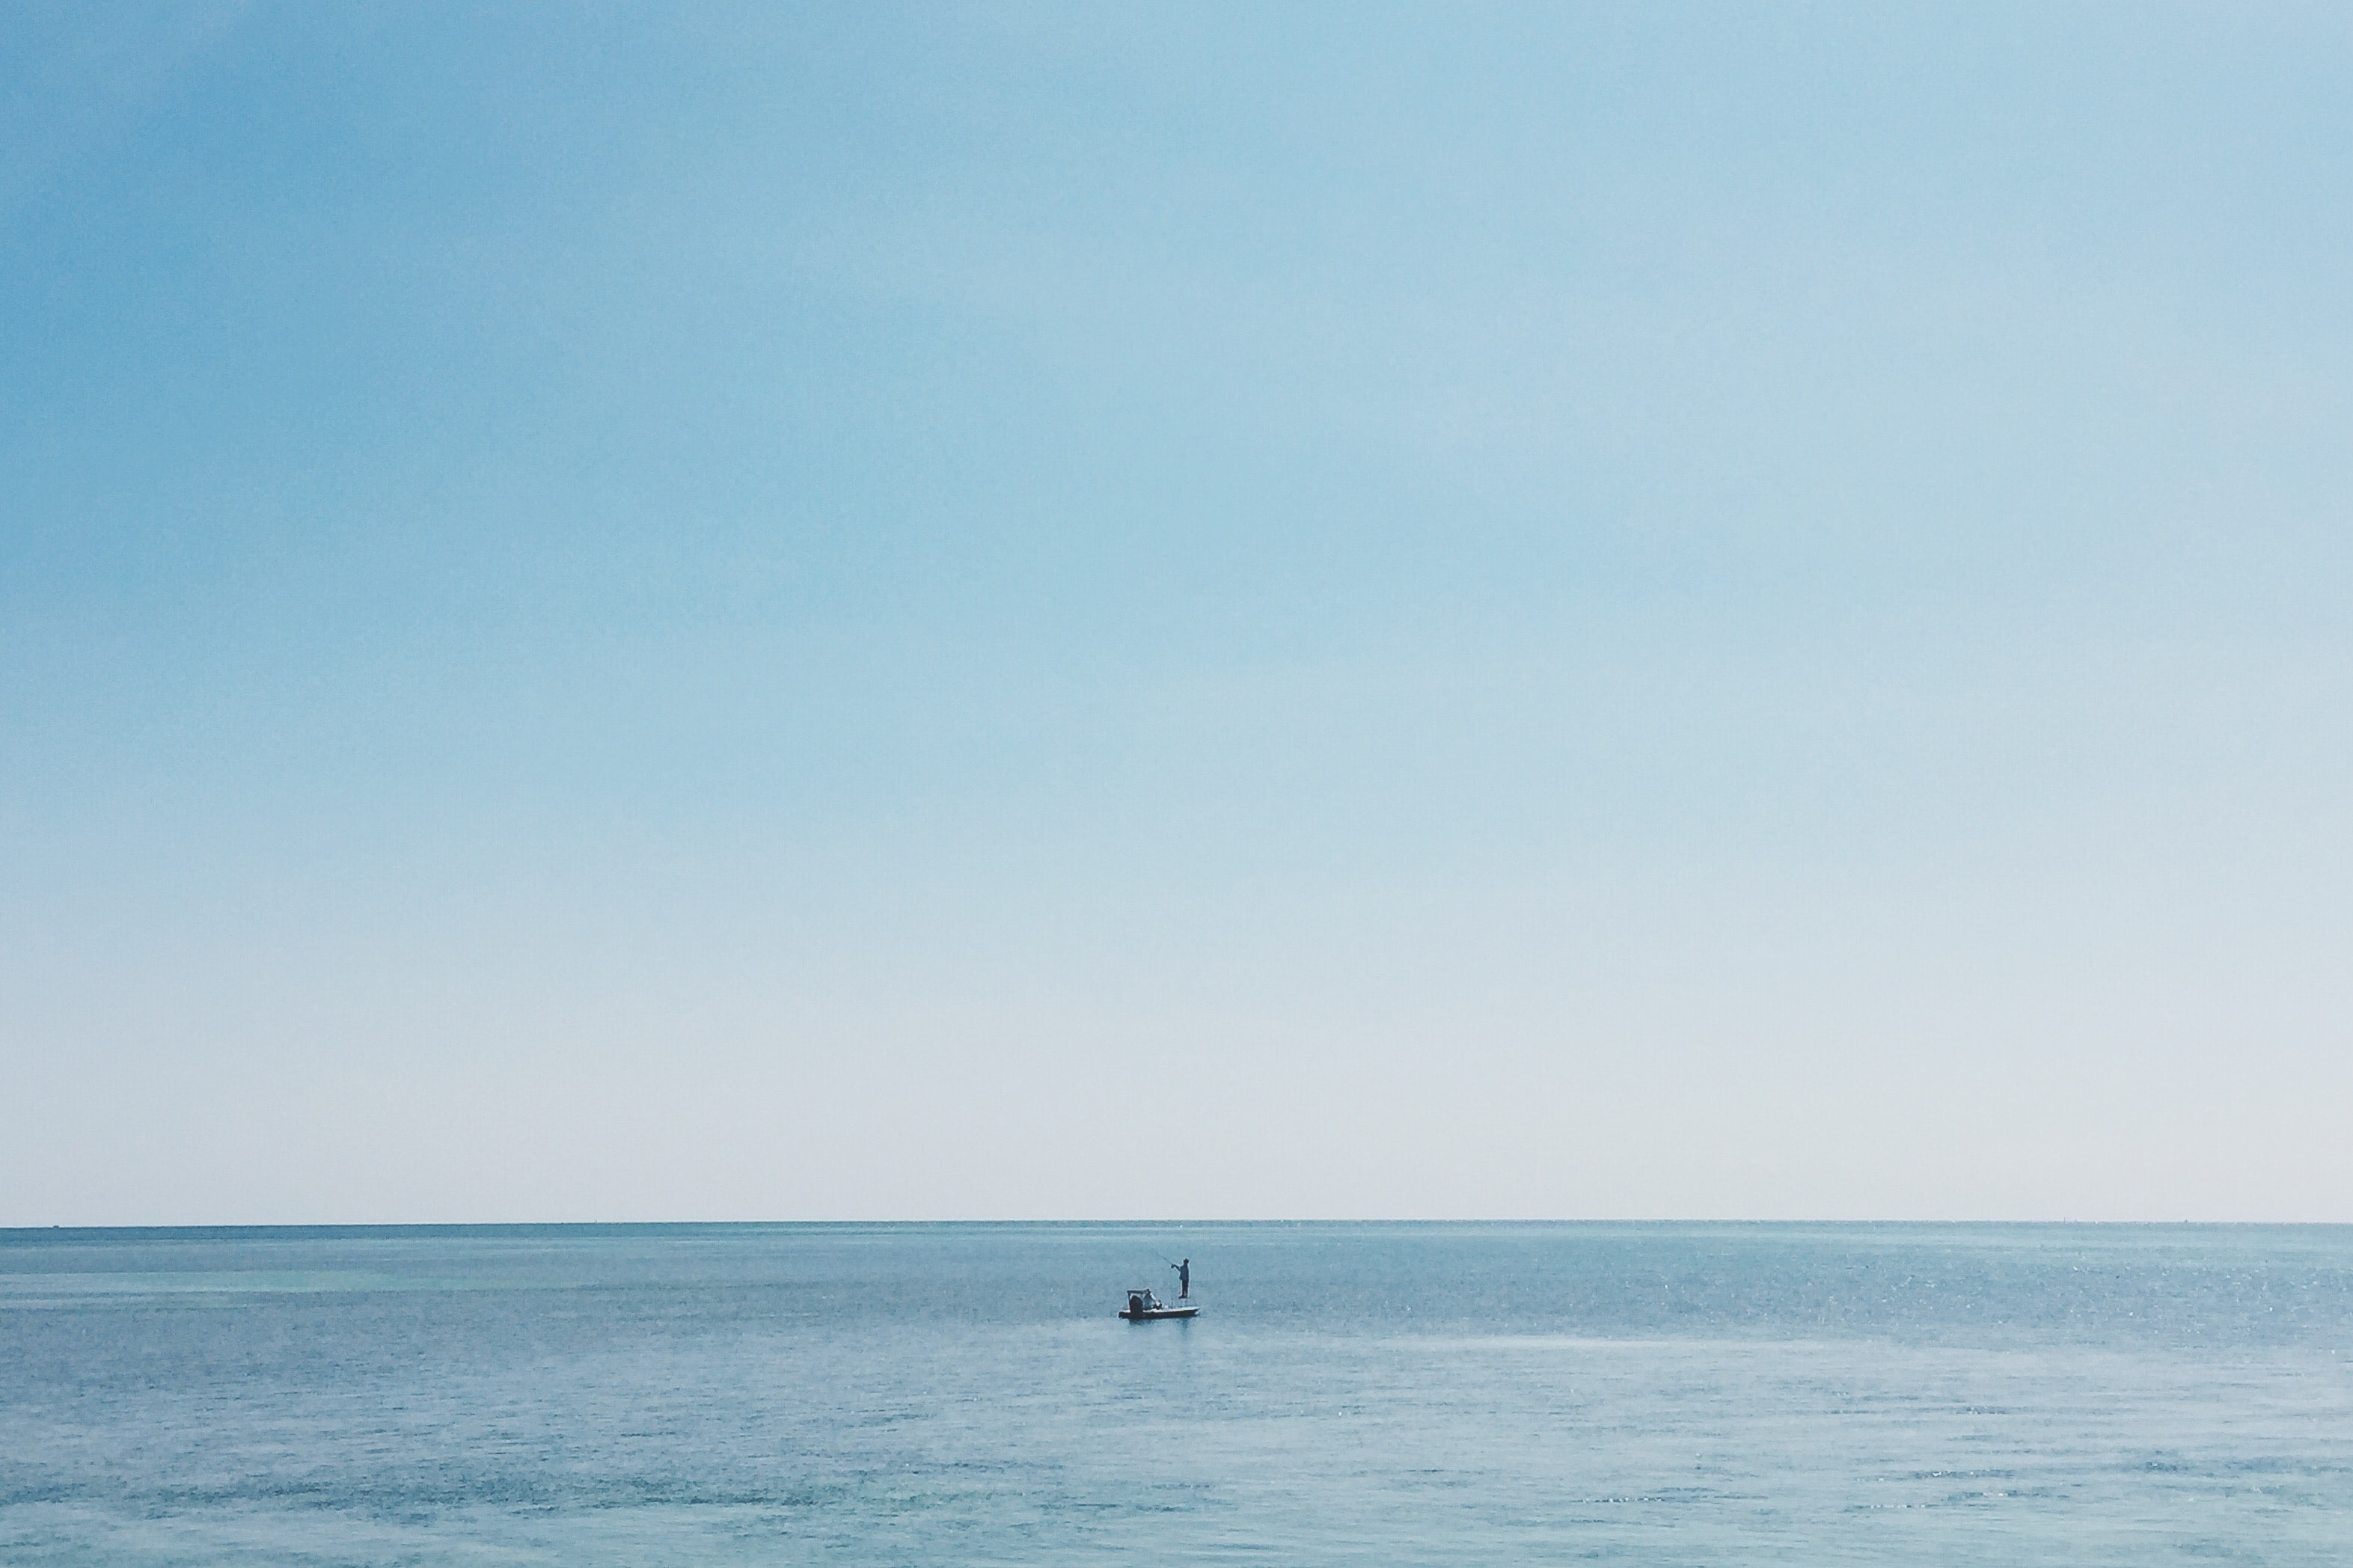 A fisherman on his boat on the calm ocean where the water meets the horizon